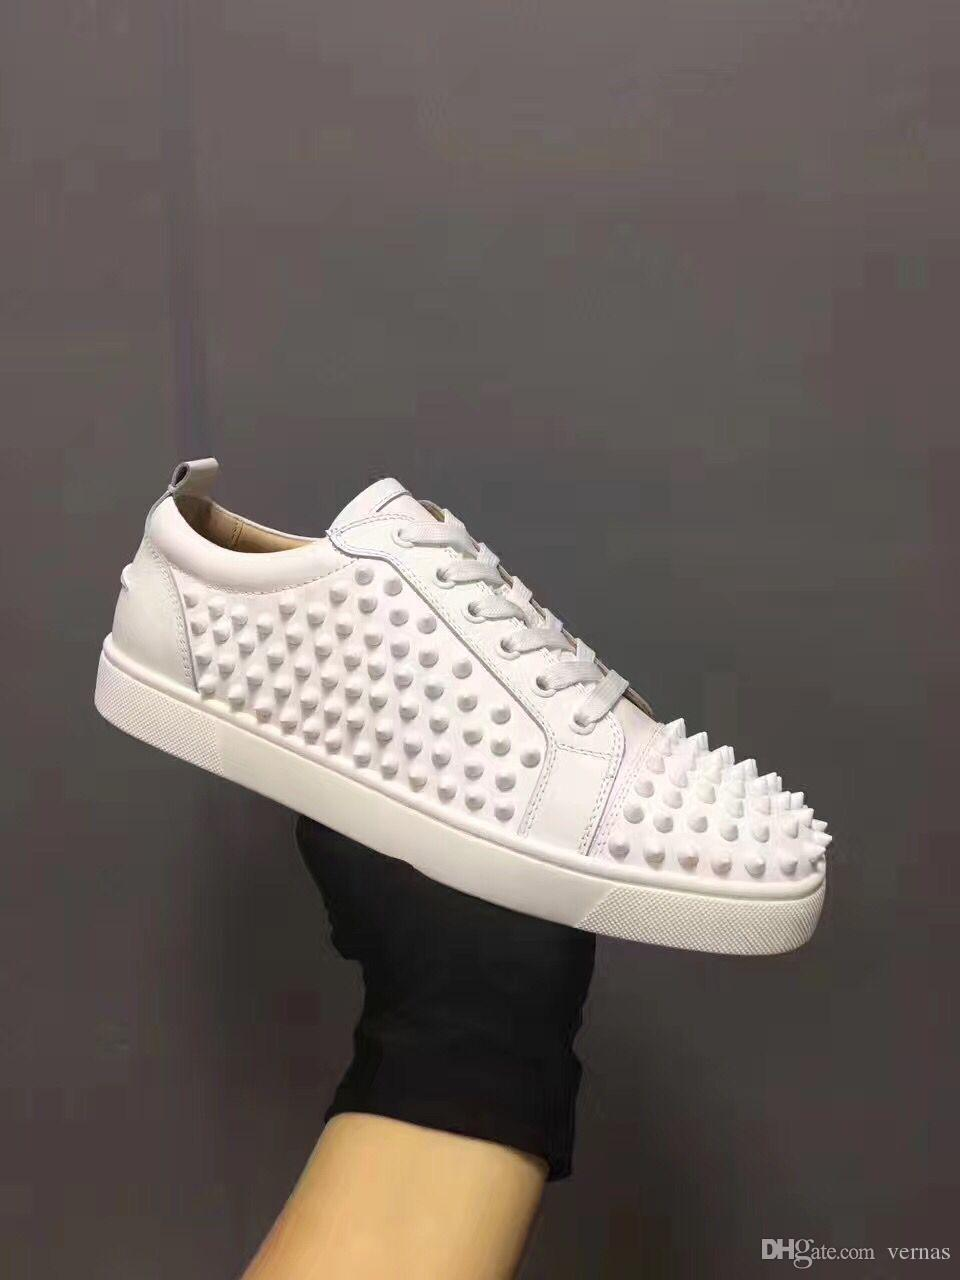 77f4bdf3fc1 Original Low Top Spikes Red Bottom Sneakers Shoes,Men Women Luxury Designer  Outdoor Trainer White Black Party Dress Leisure Walking Shoes